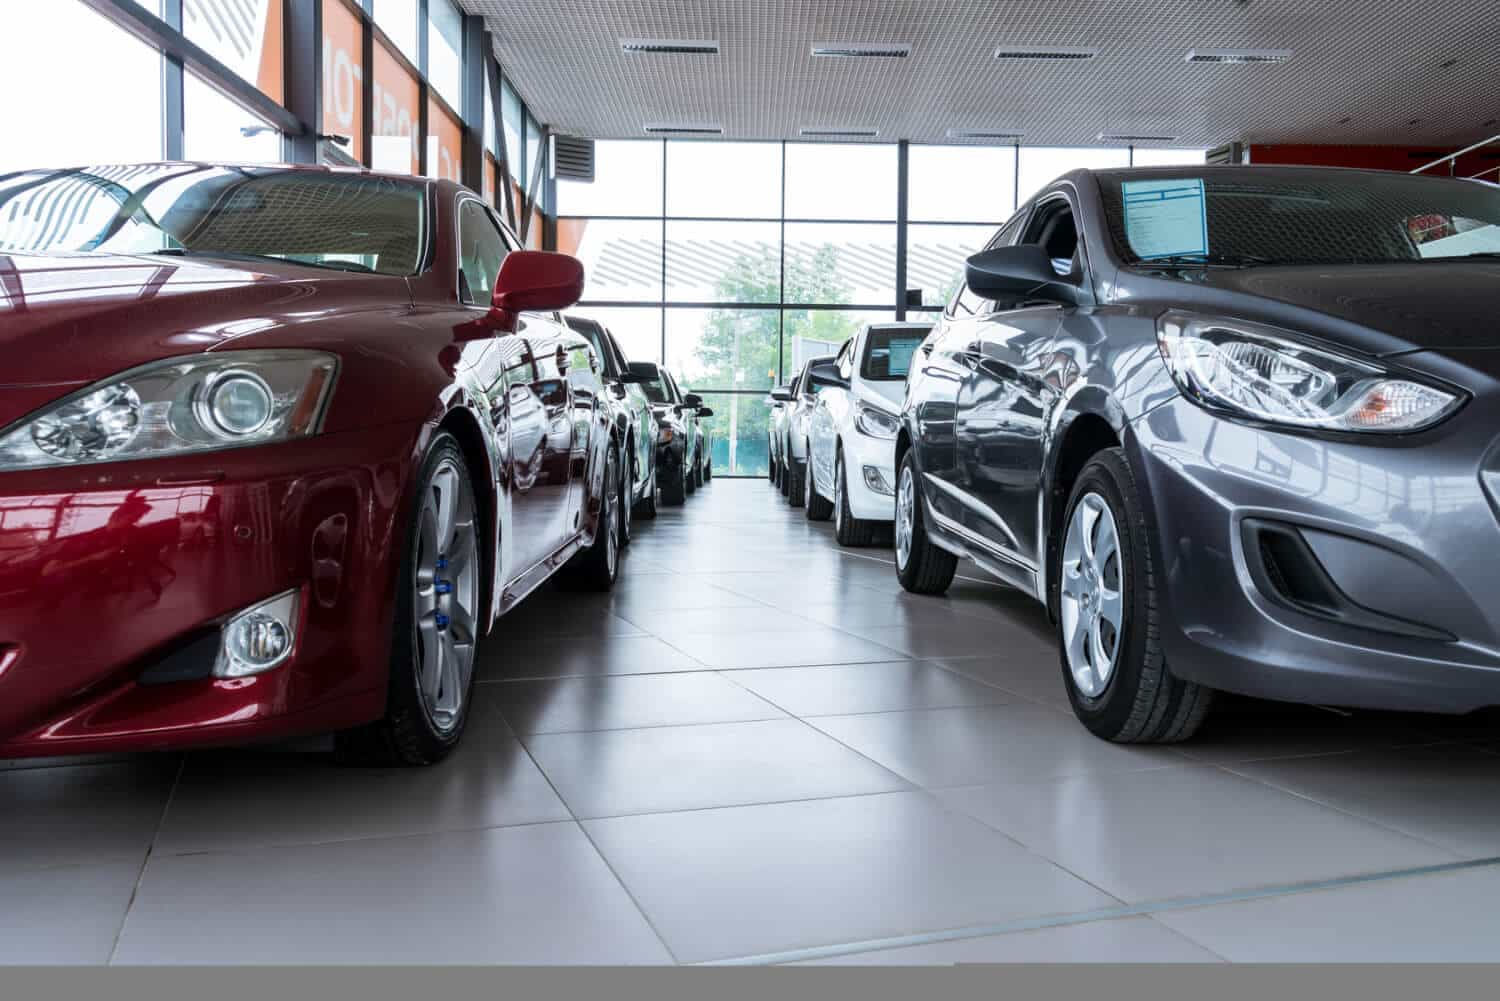 New cars lined up on an auto dealership showroom floor, waiting for car buying financed through auto loans